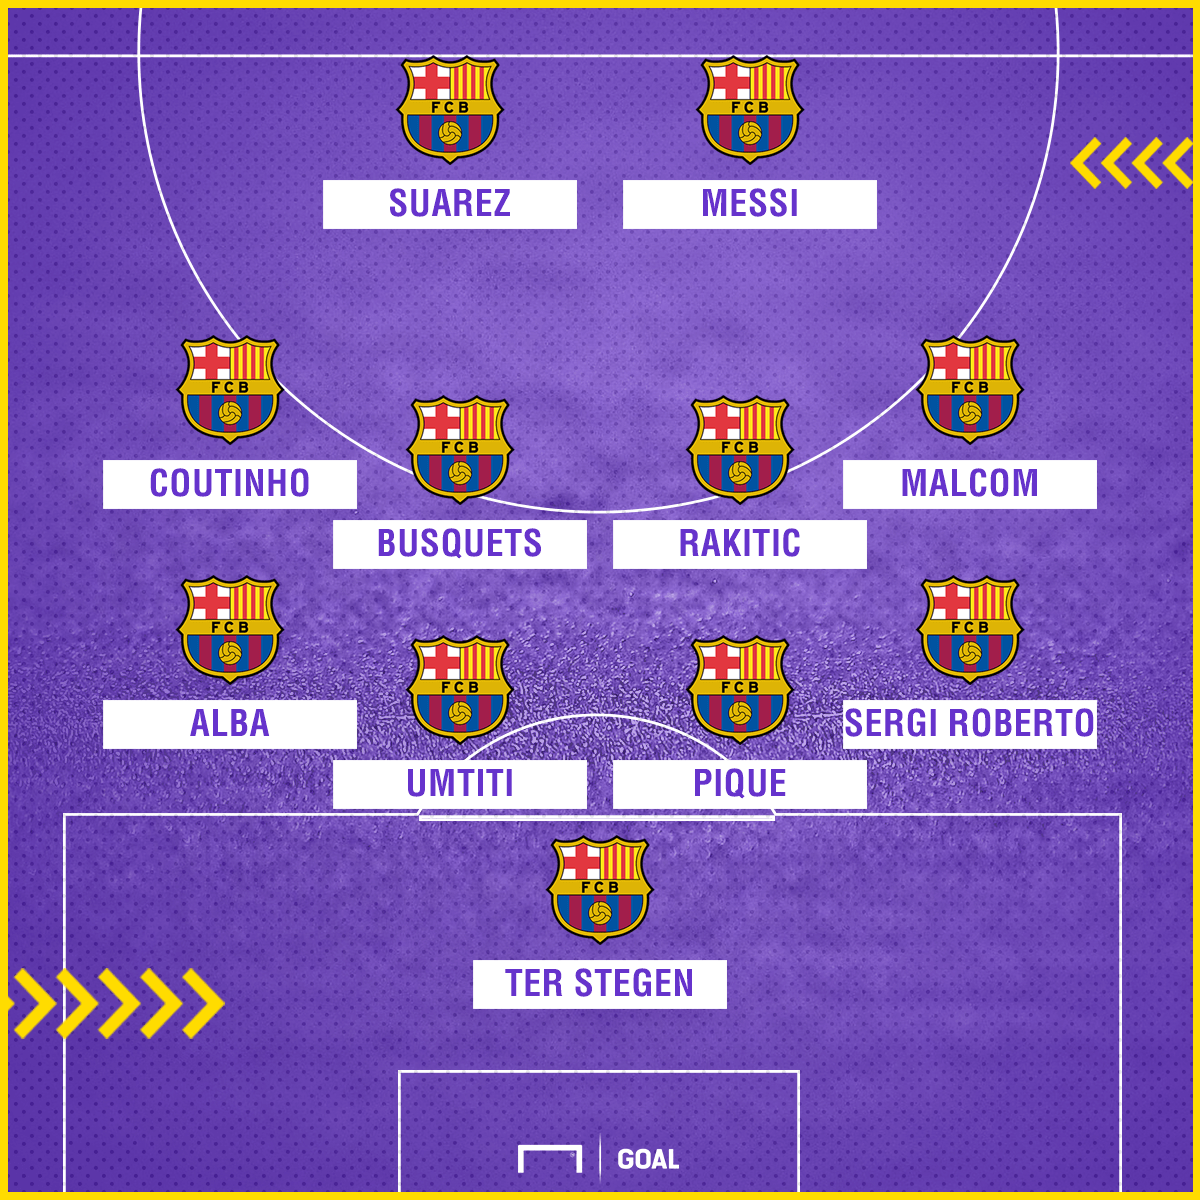 Malcom on the right Barcelona